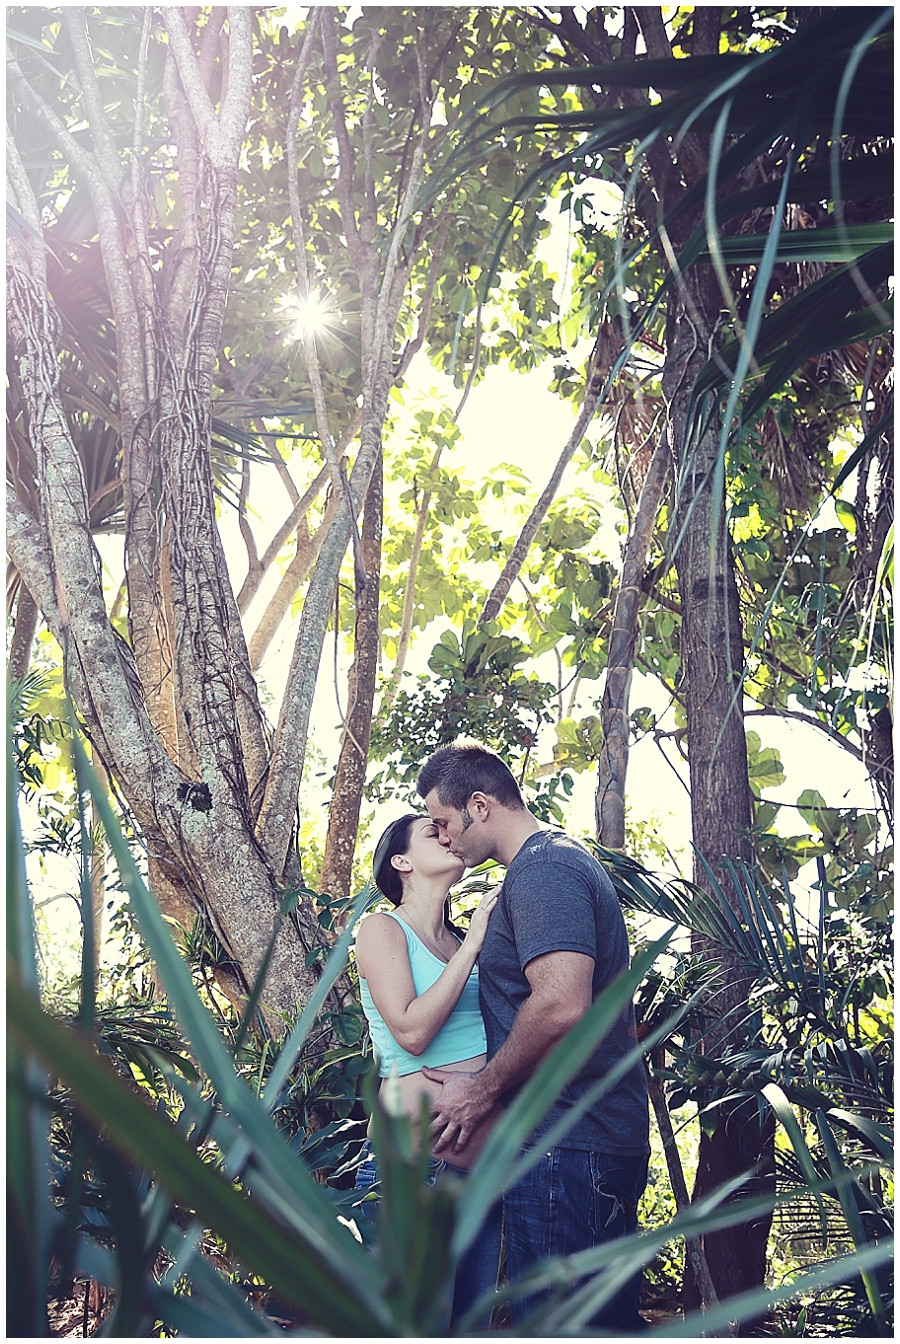 Gareth + Coralie | Pregnancy Shoot_0010.jpg